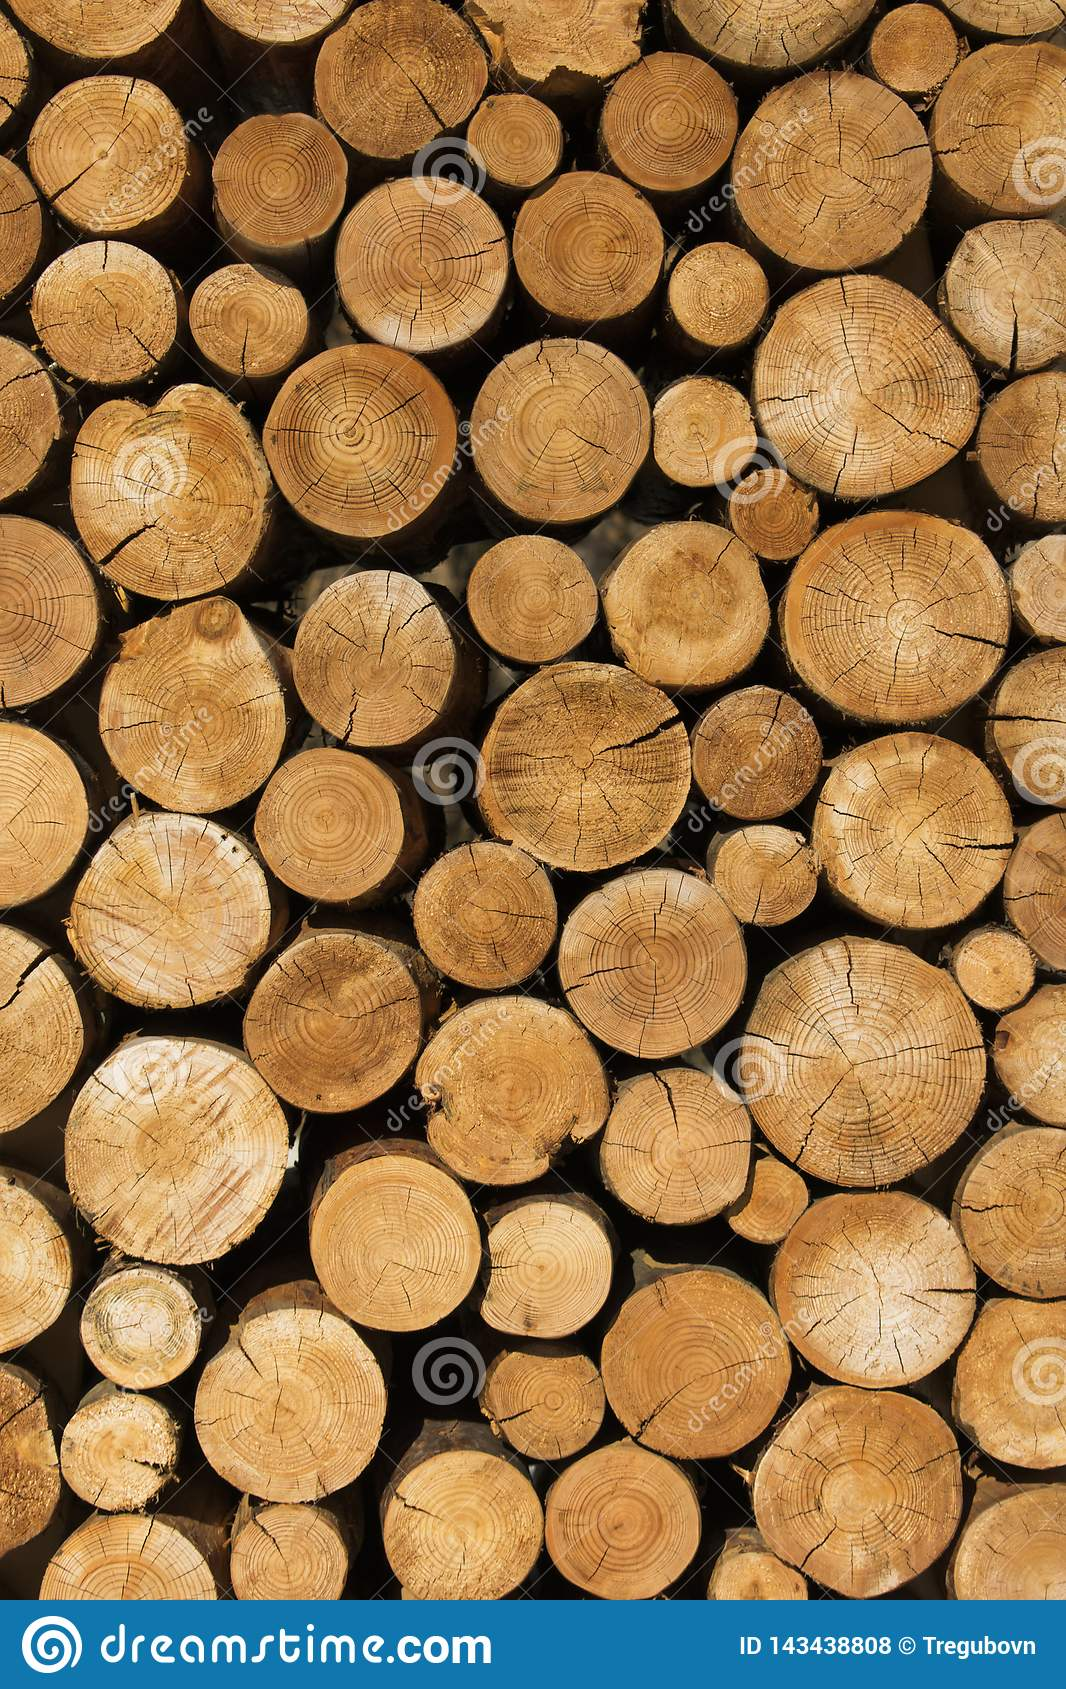 The decoration of wooden logs. Decor